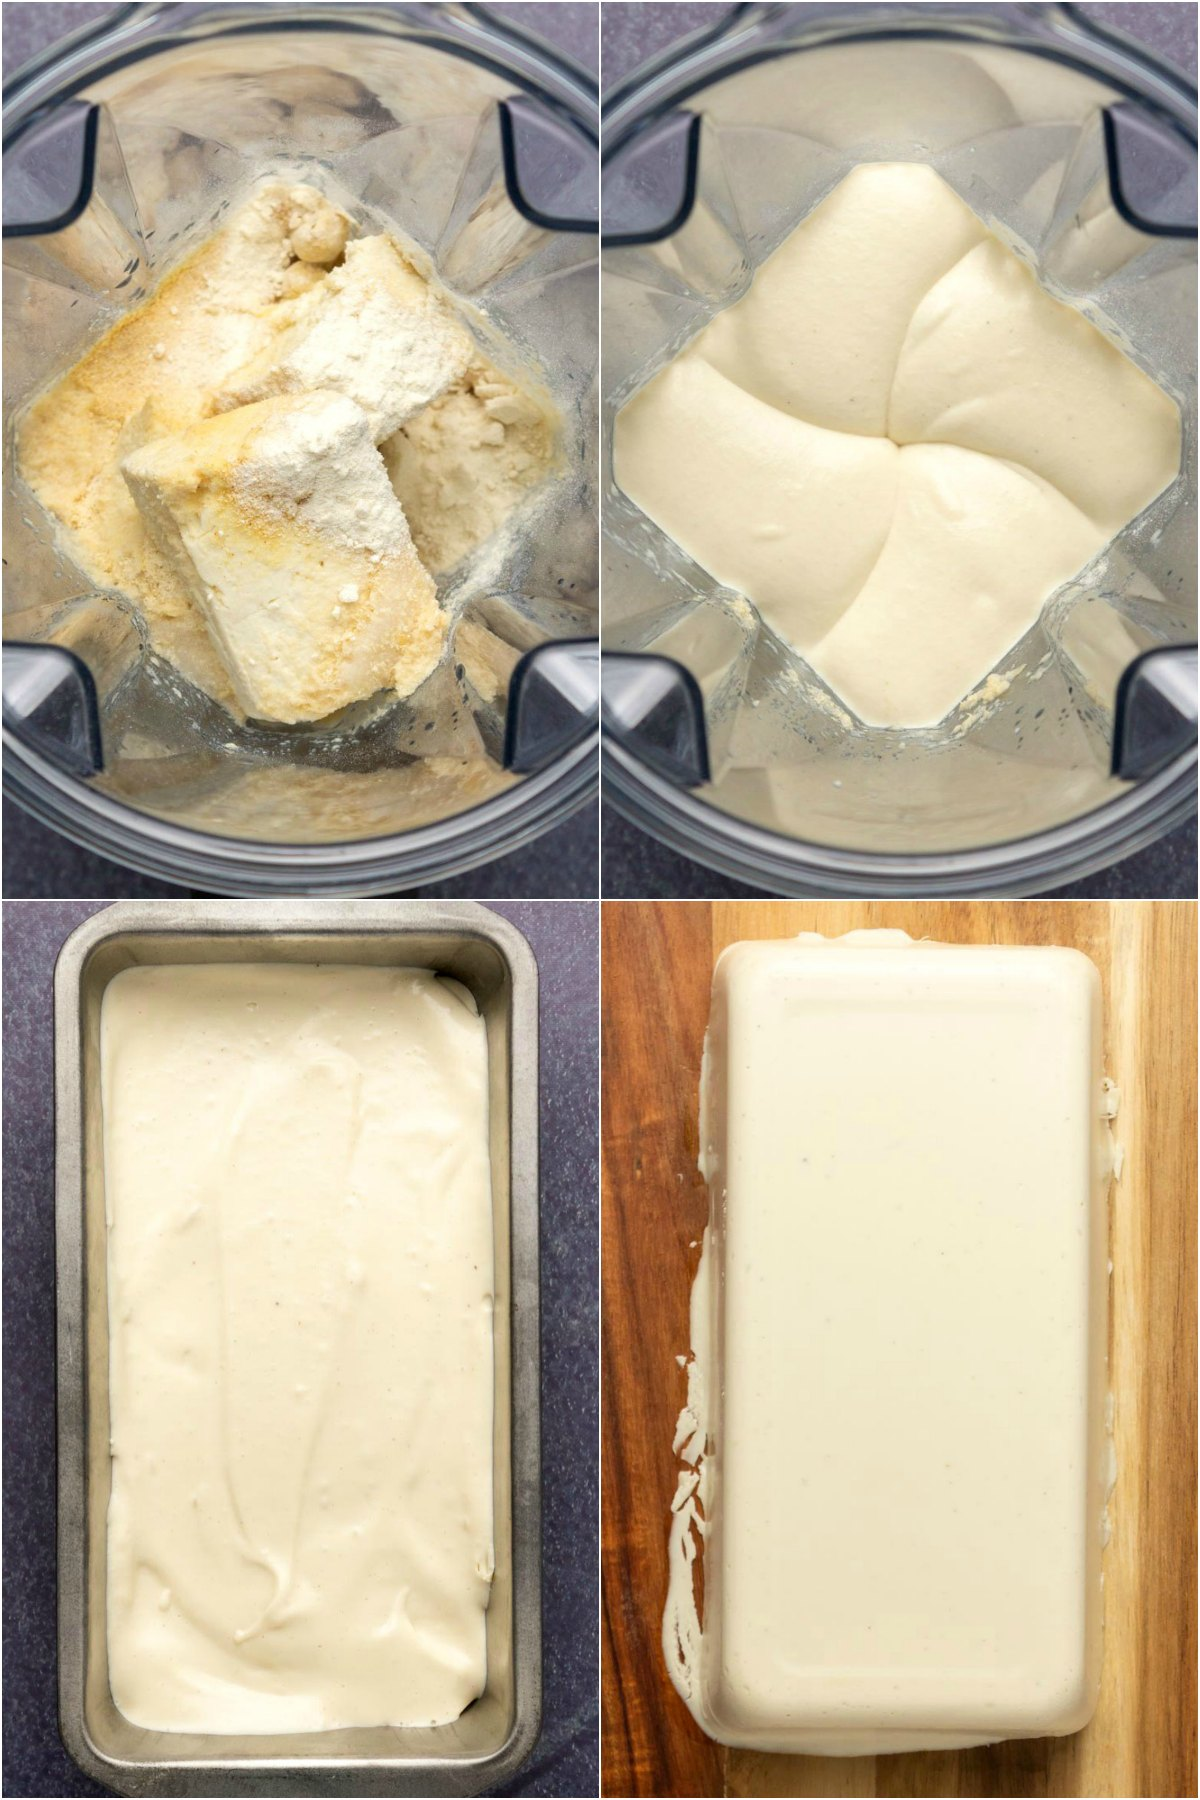 Step by step process photo collage of making vegan feta cheese.